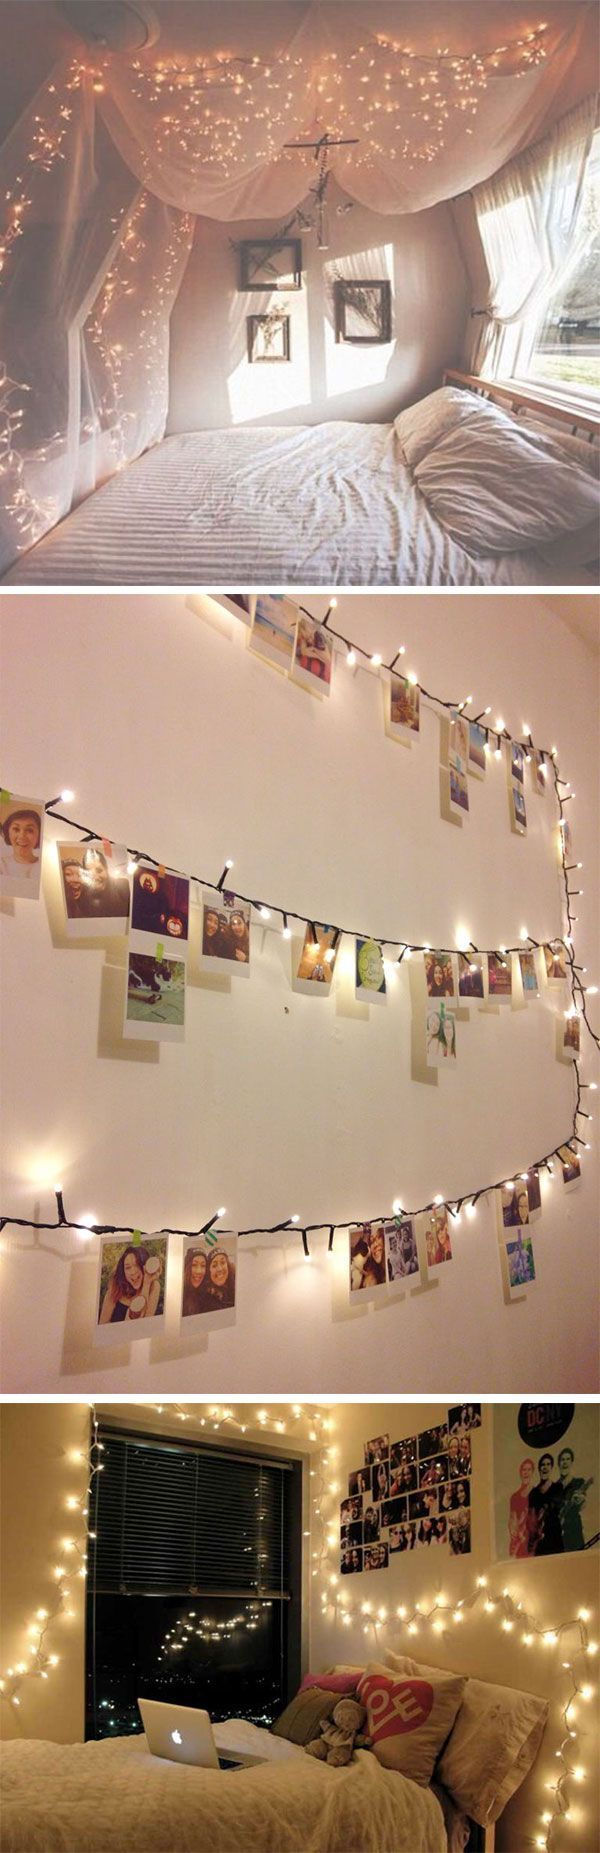 13 ways to use fairy lights to make your home look magical - http://centophobe.com/13-ways-to-use-fairy-lights-to-make-your-home-look-magical/ -